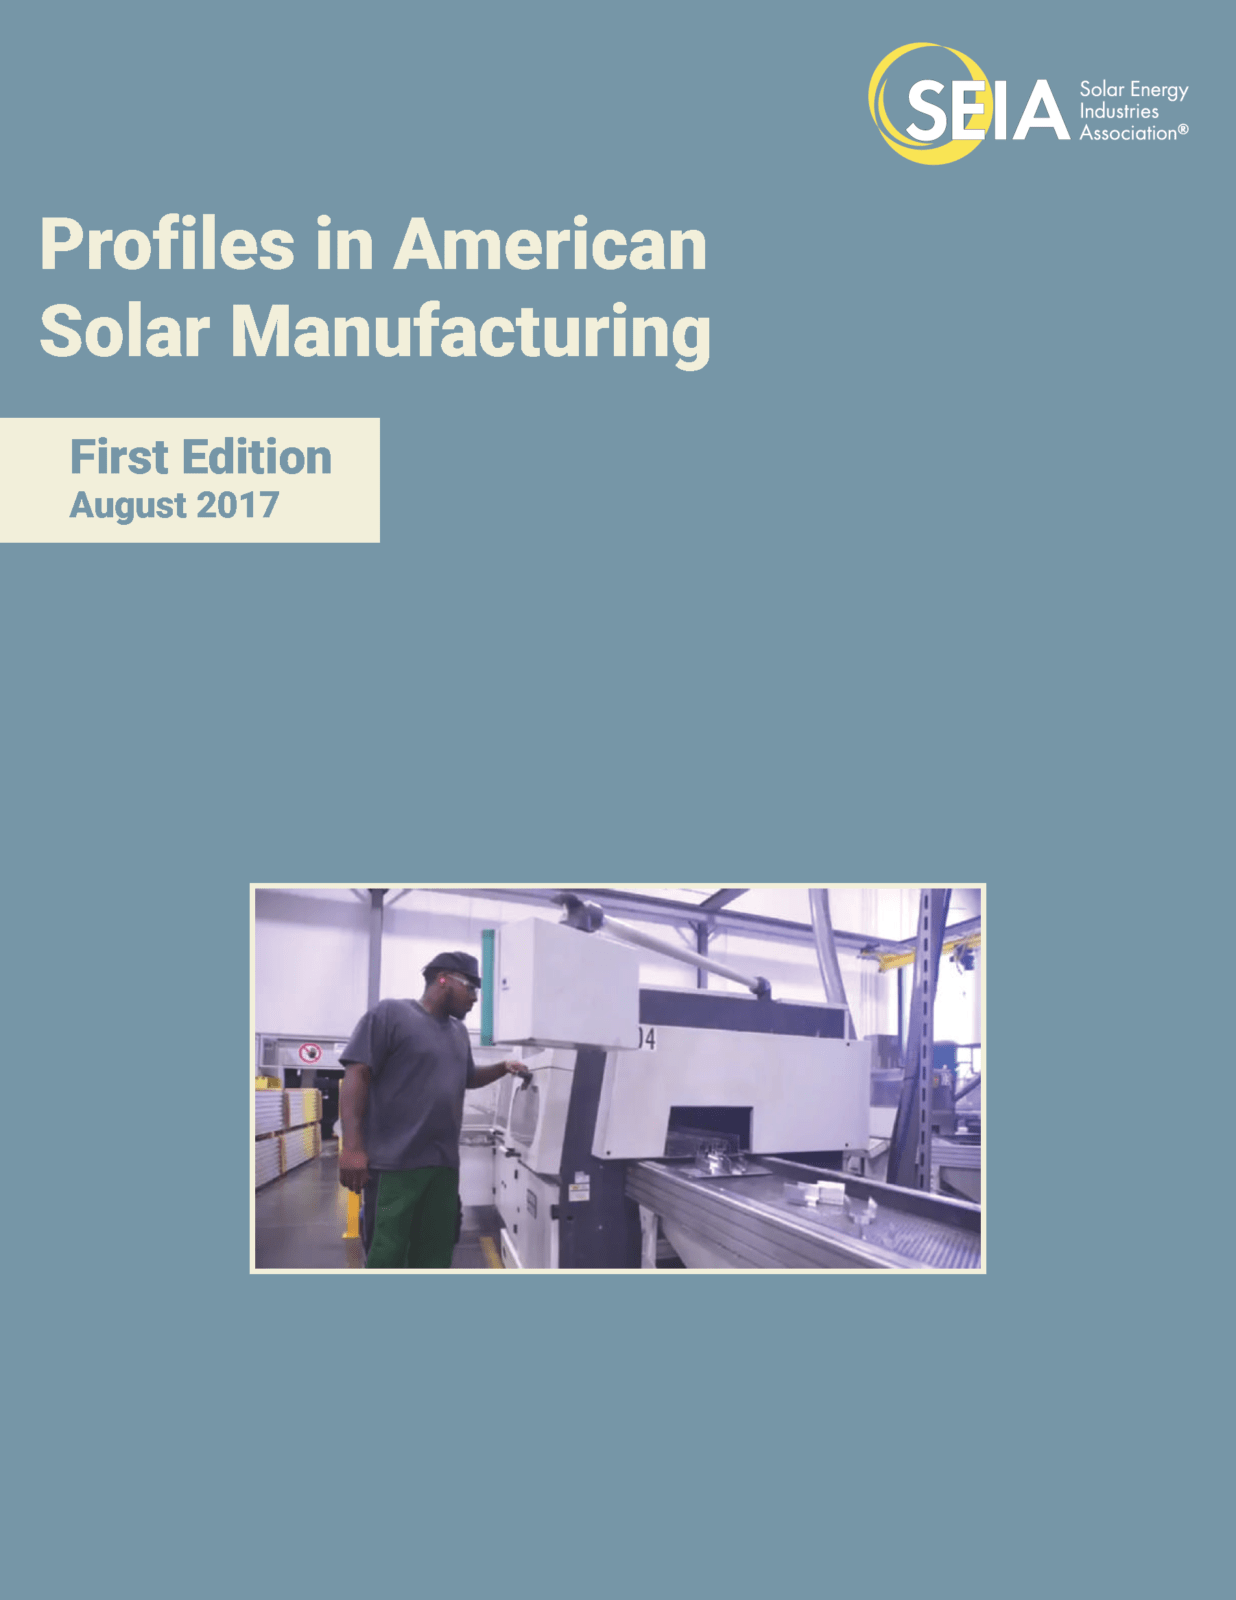 Profiles in American Solar Manufacturing